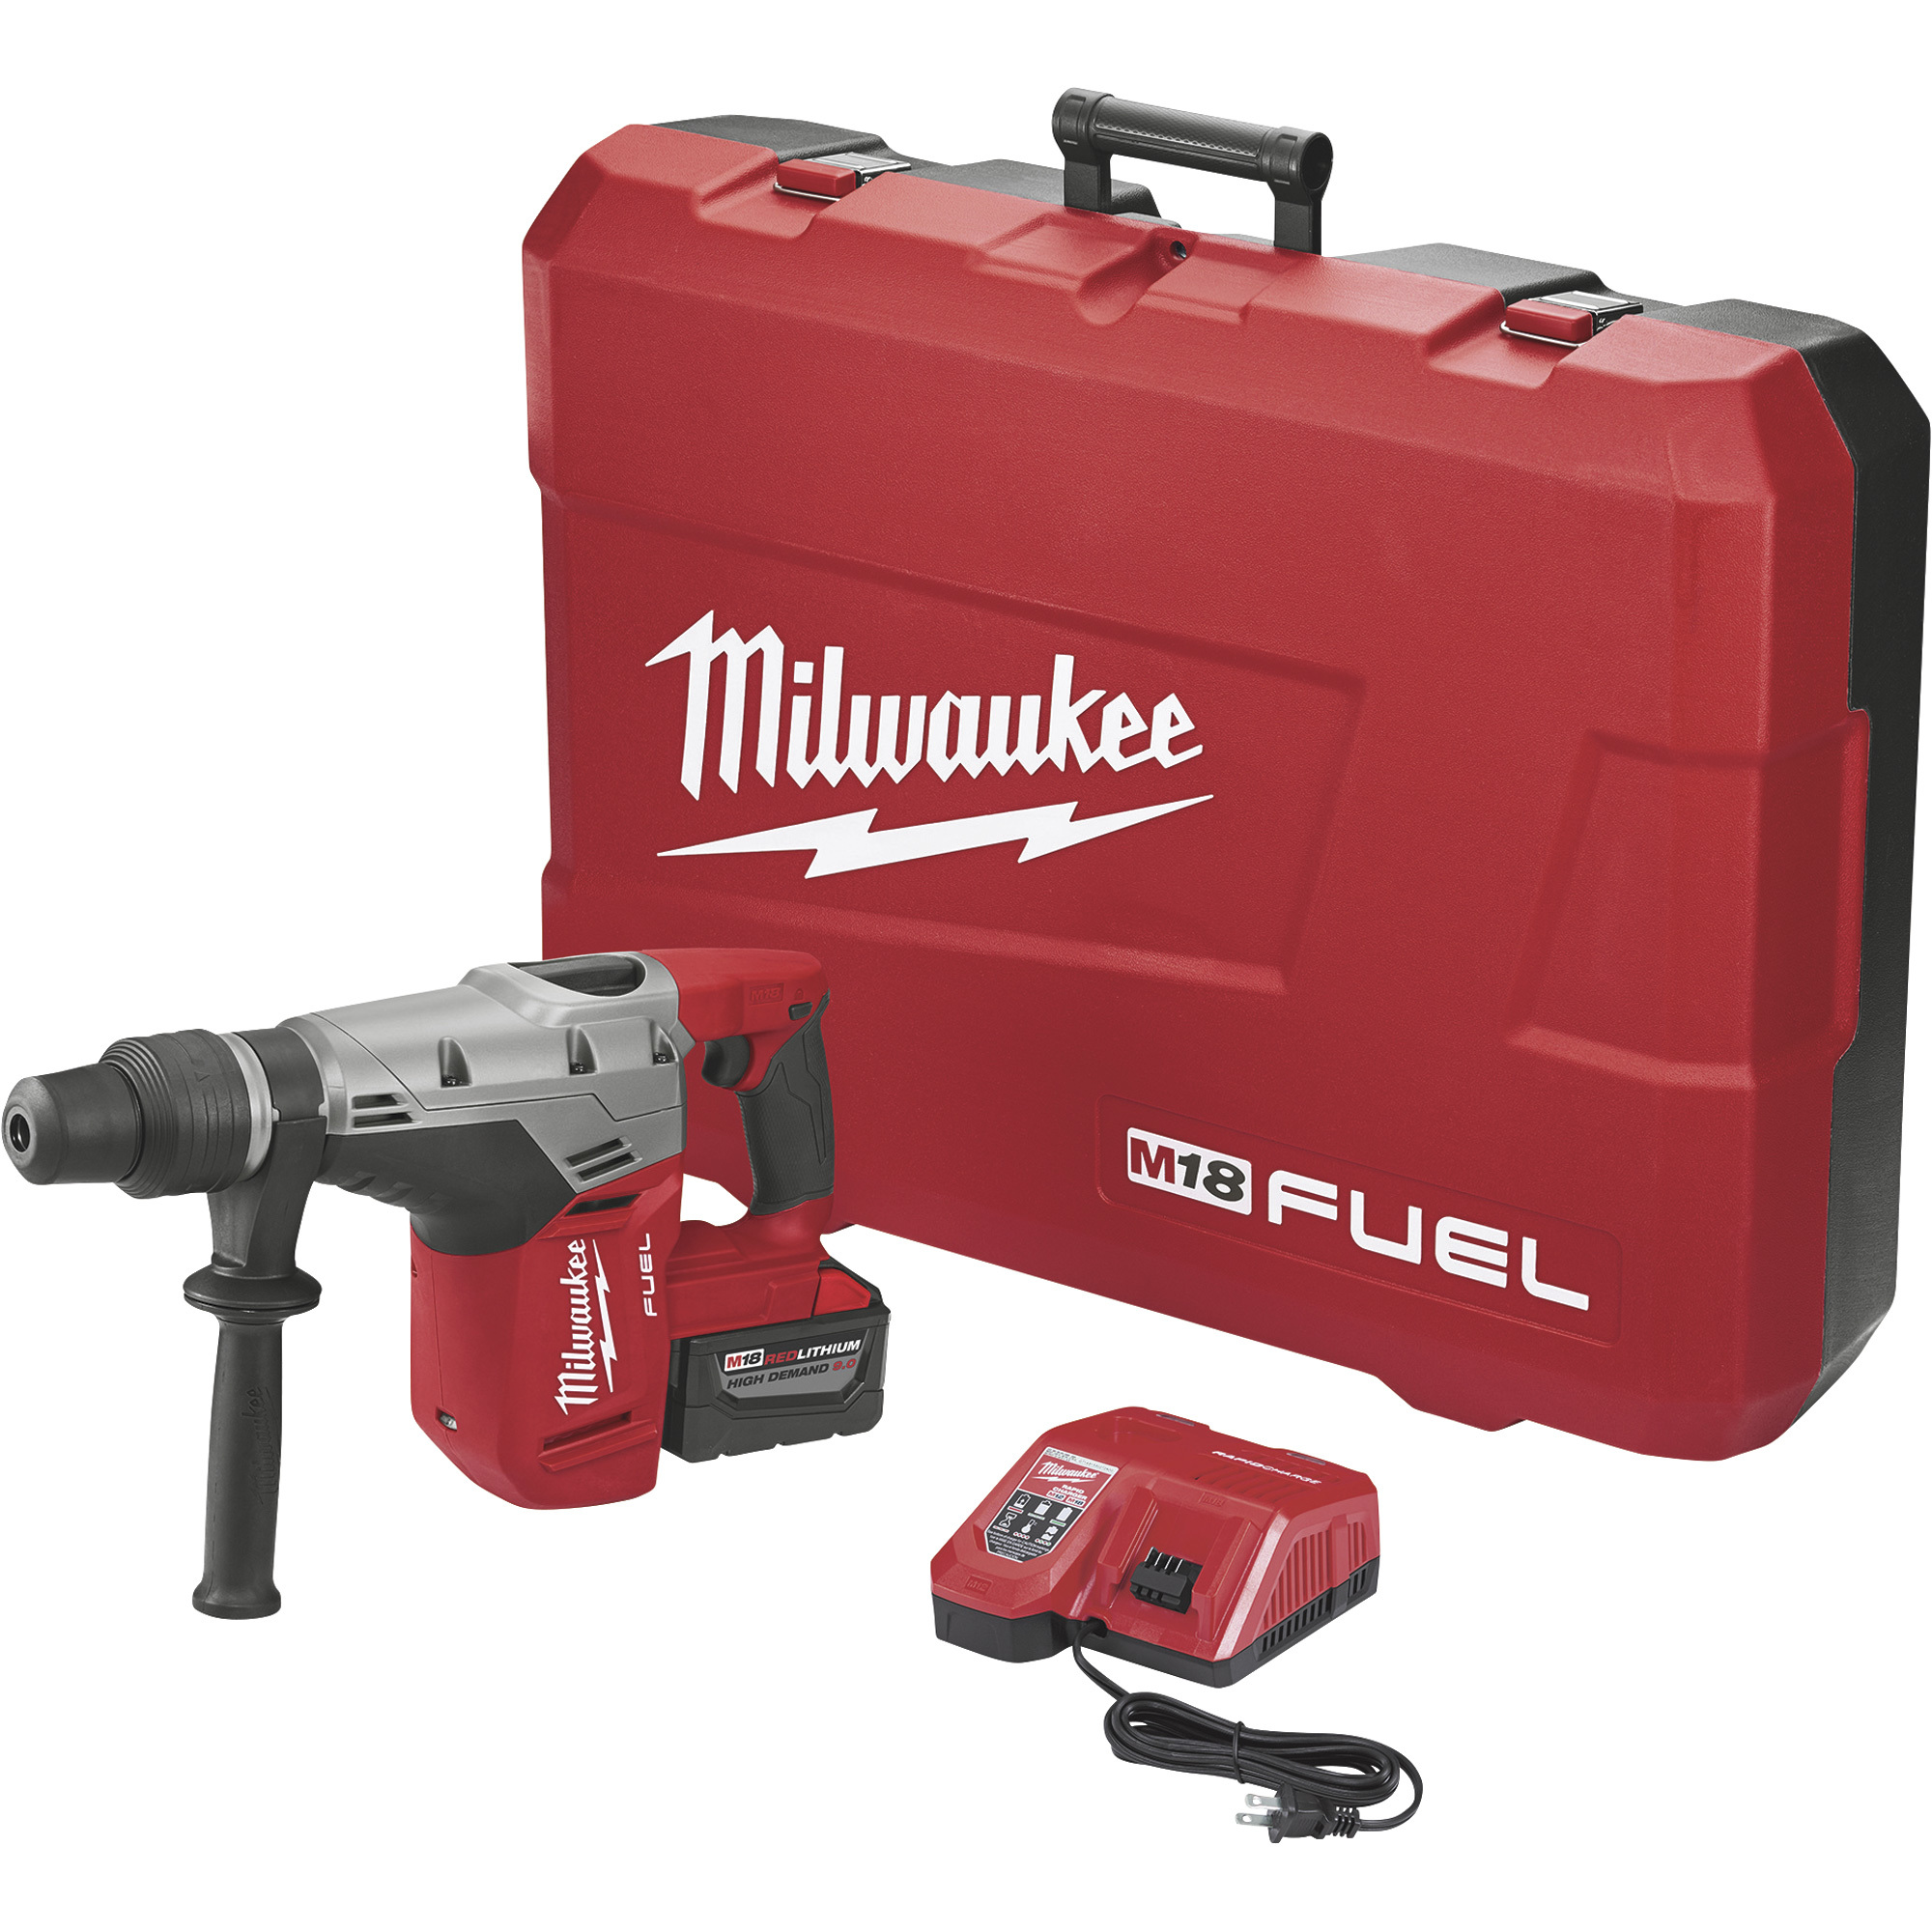 Milwaukee M18 Fuel 1 9/16in  SDS Max Hammer Drill Kit — With 1 Battery, 18  Volt, Model# 2717-21HD